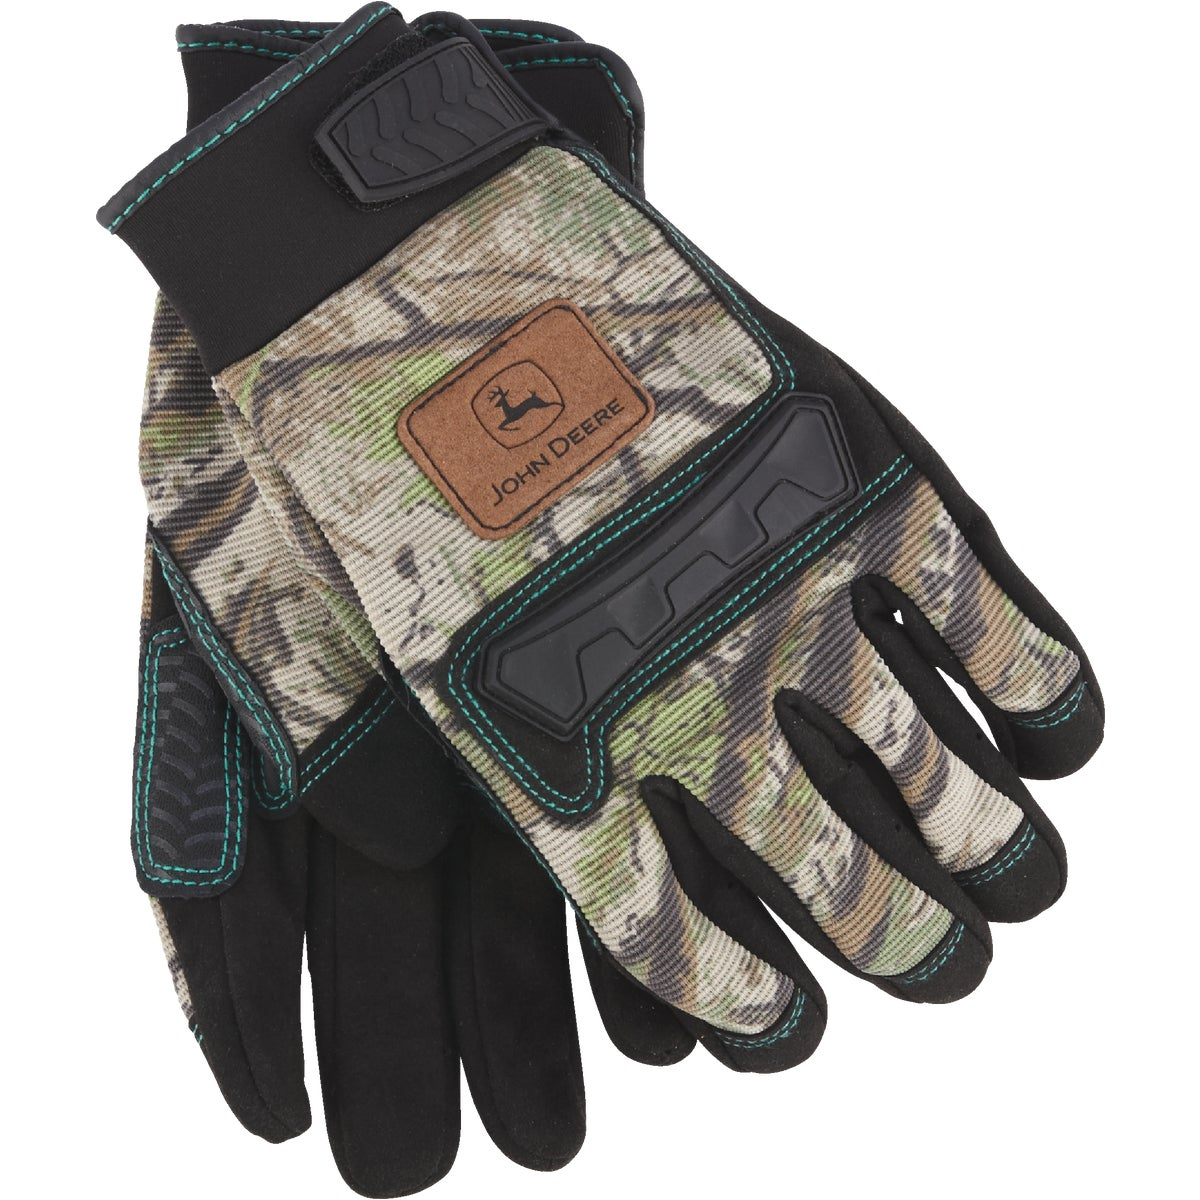 LRG CAMO SYNTHETIC GLOVE - JD00011/L by West Chester Incom